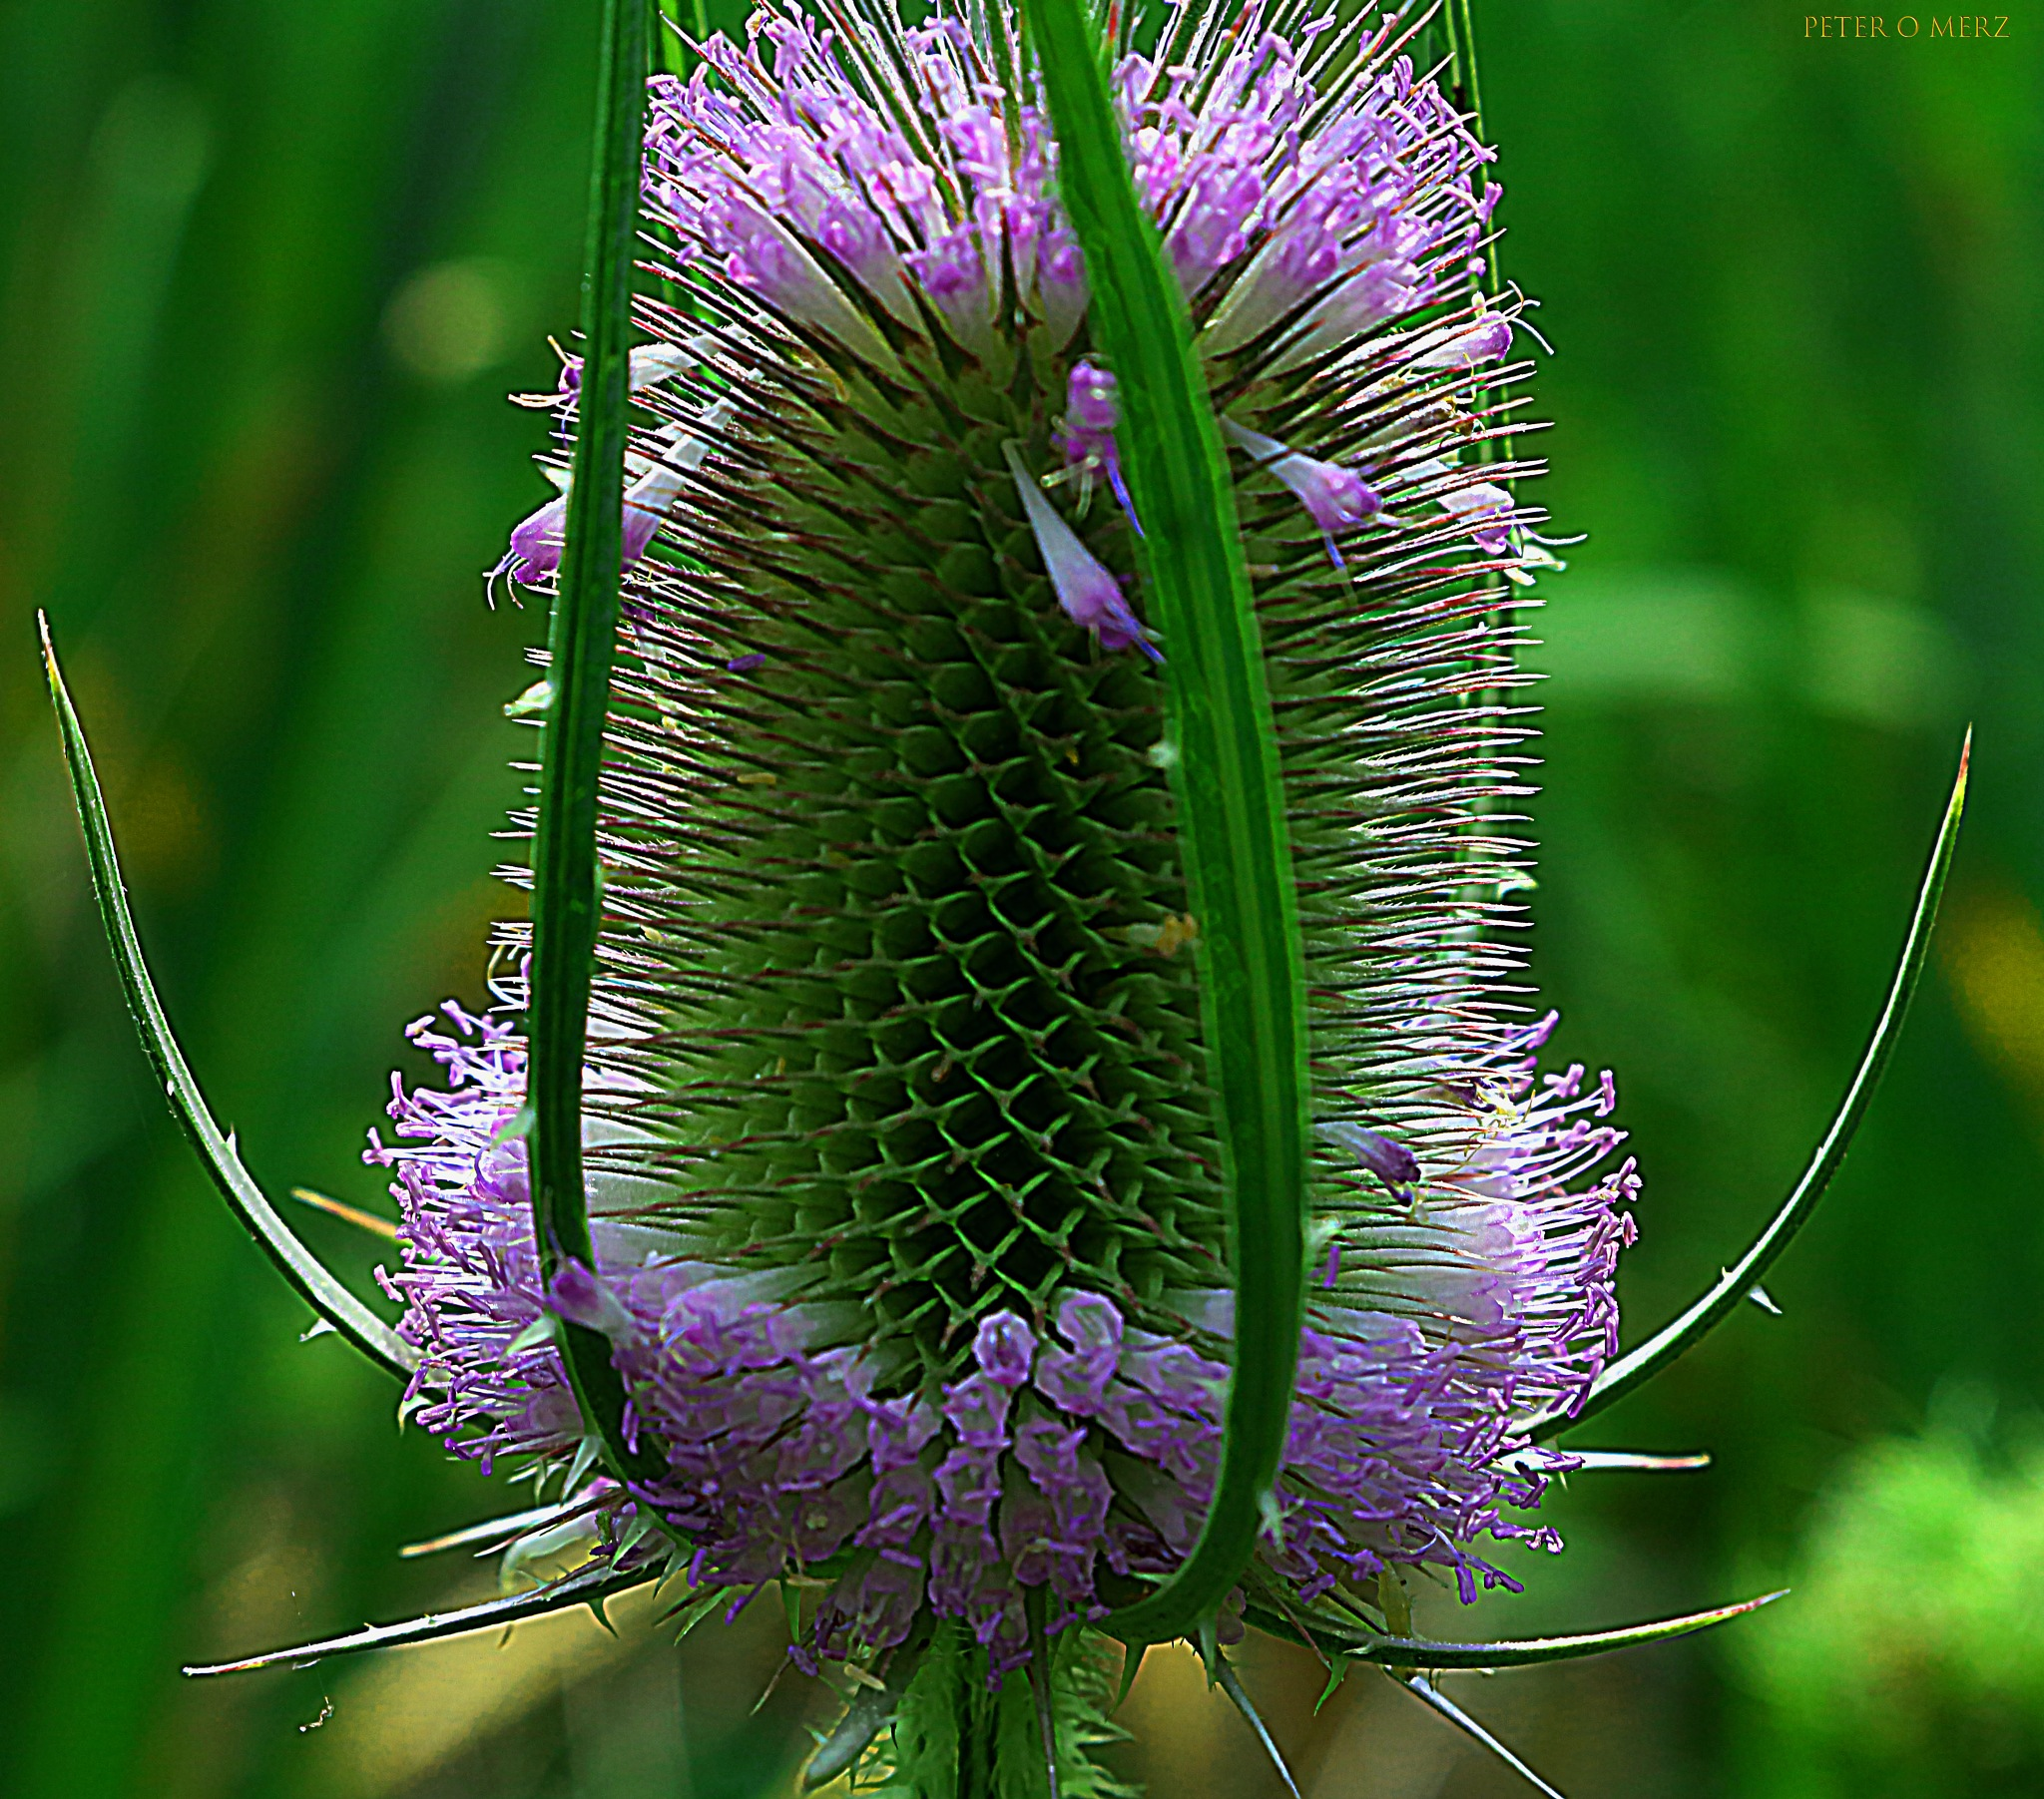 thistle in bloom! by Peter O Merz